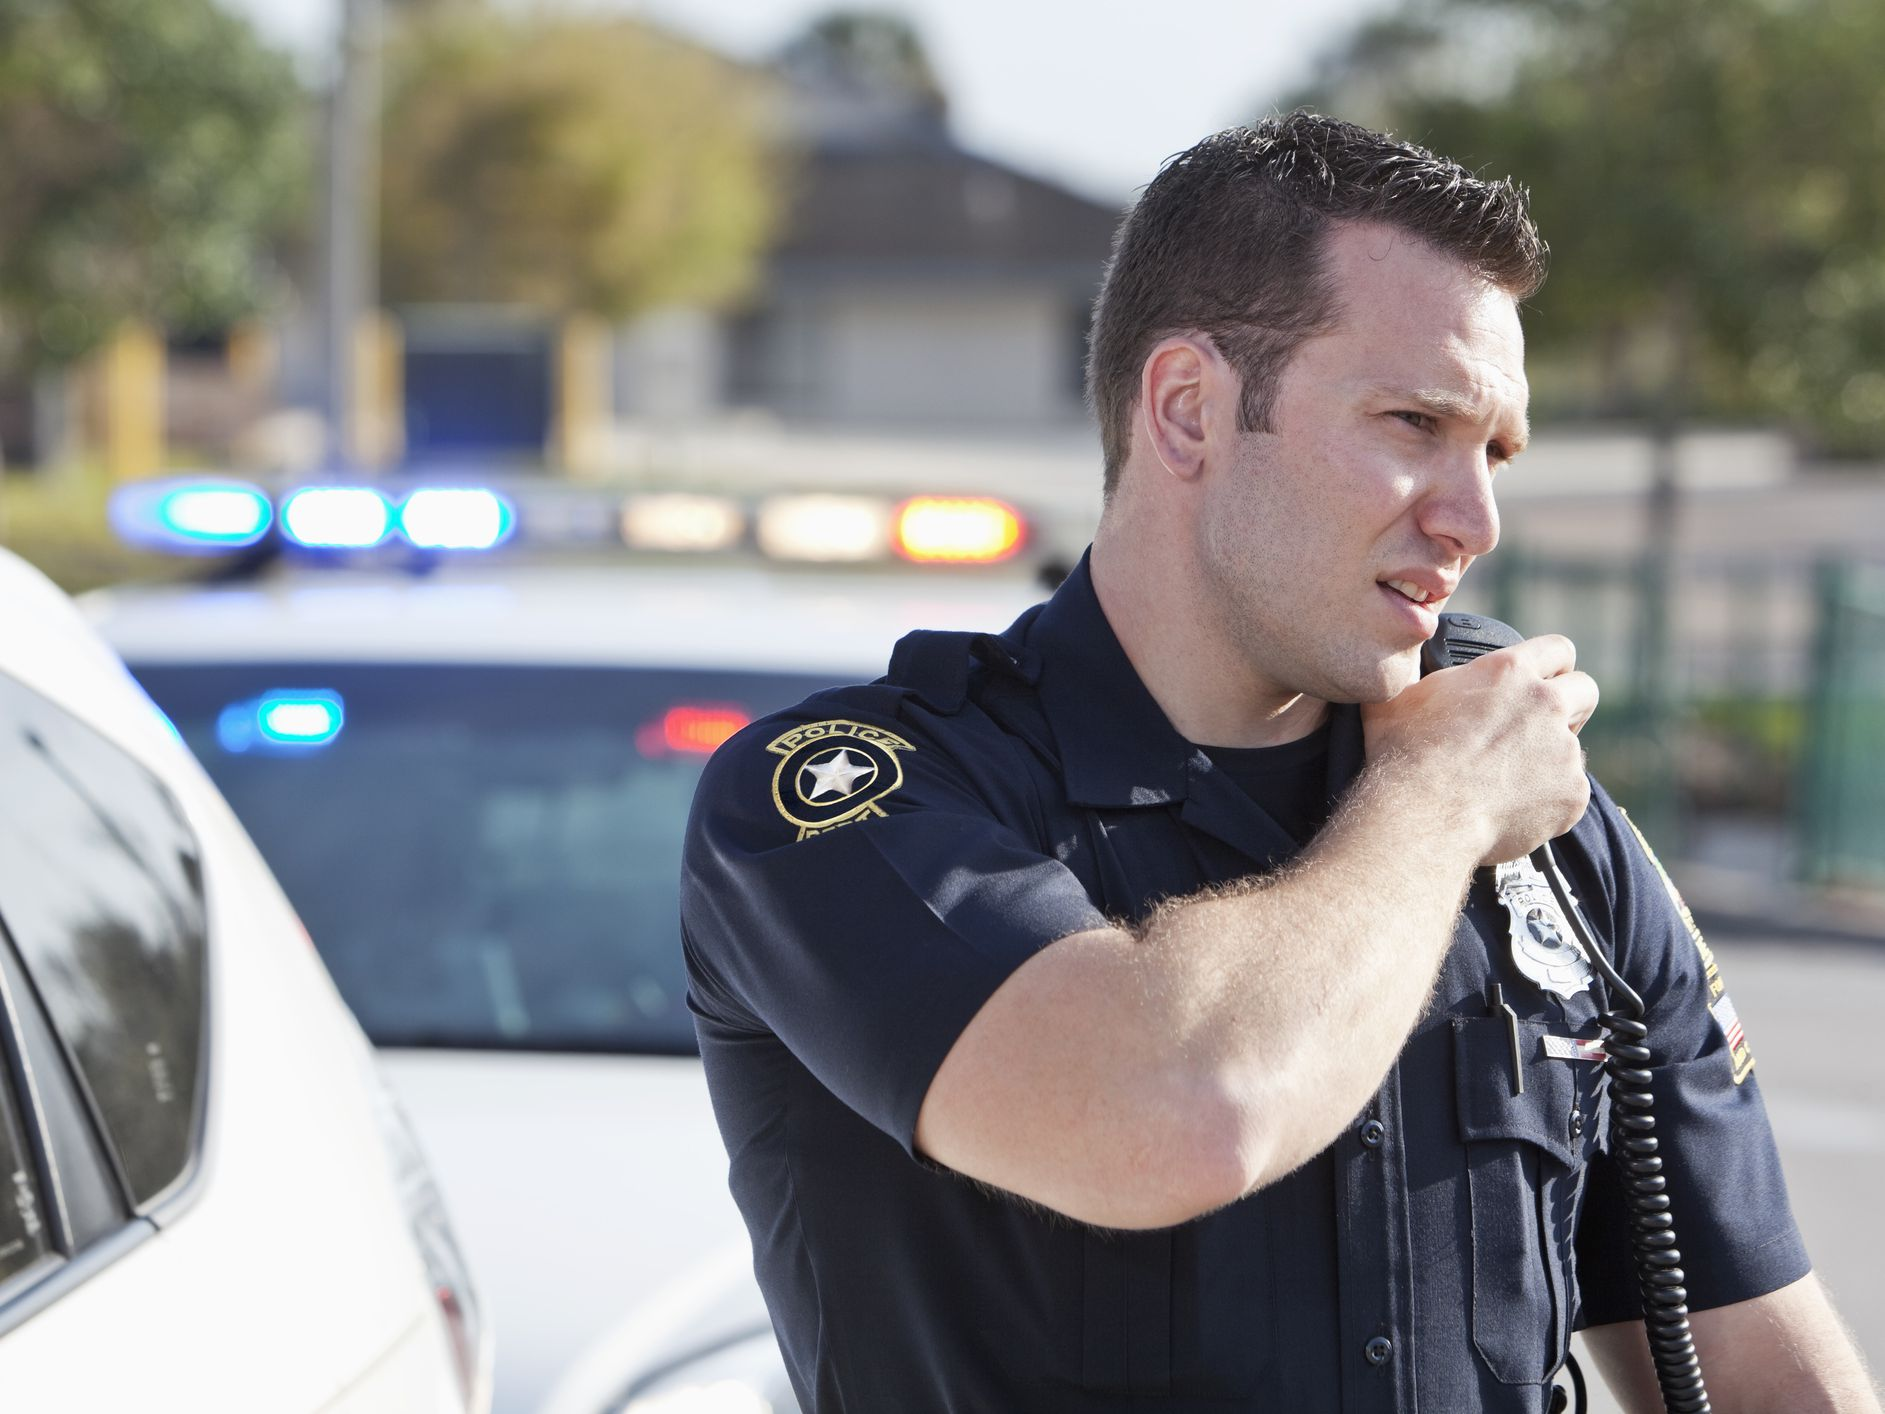 Law Enforcement Lingo and Police Codes